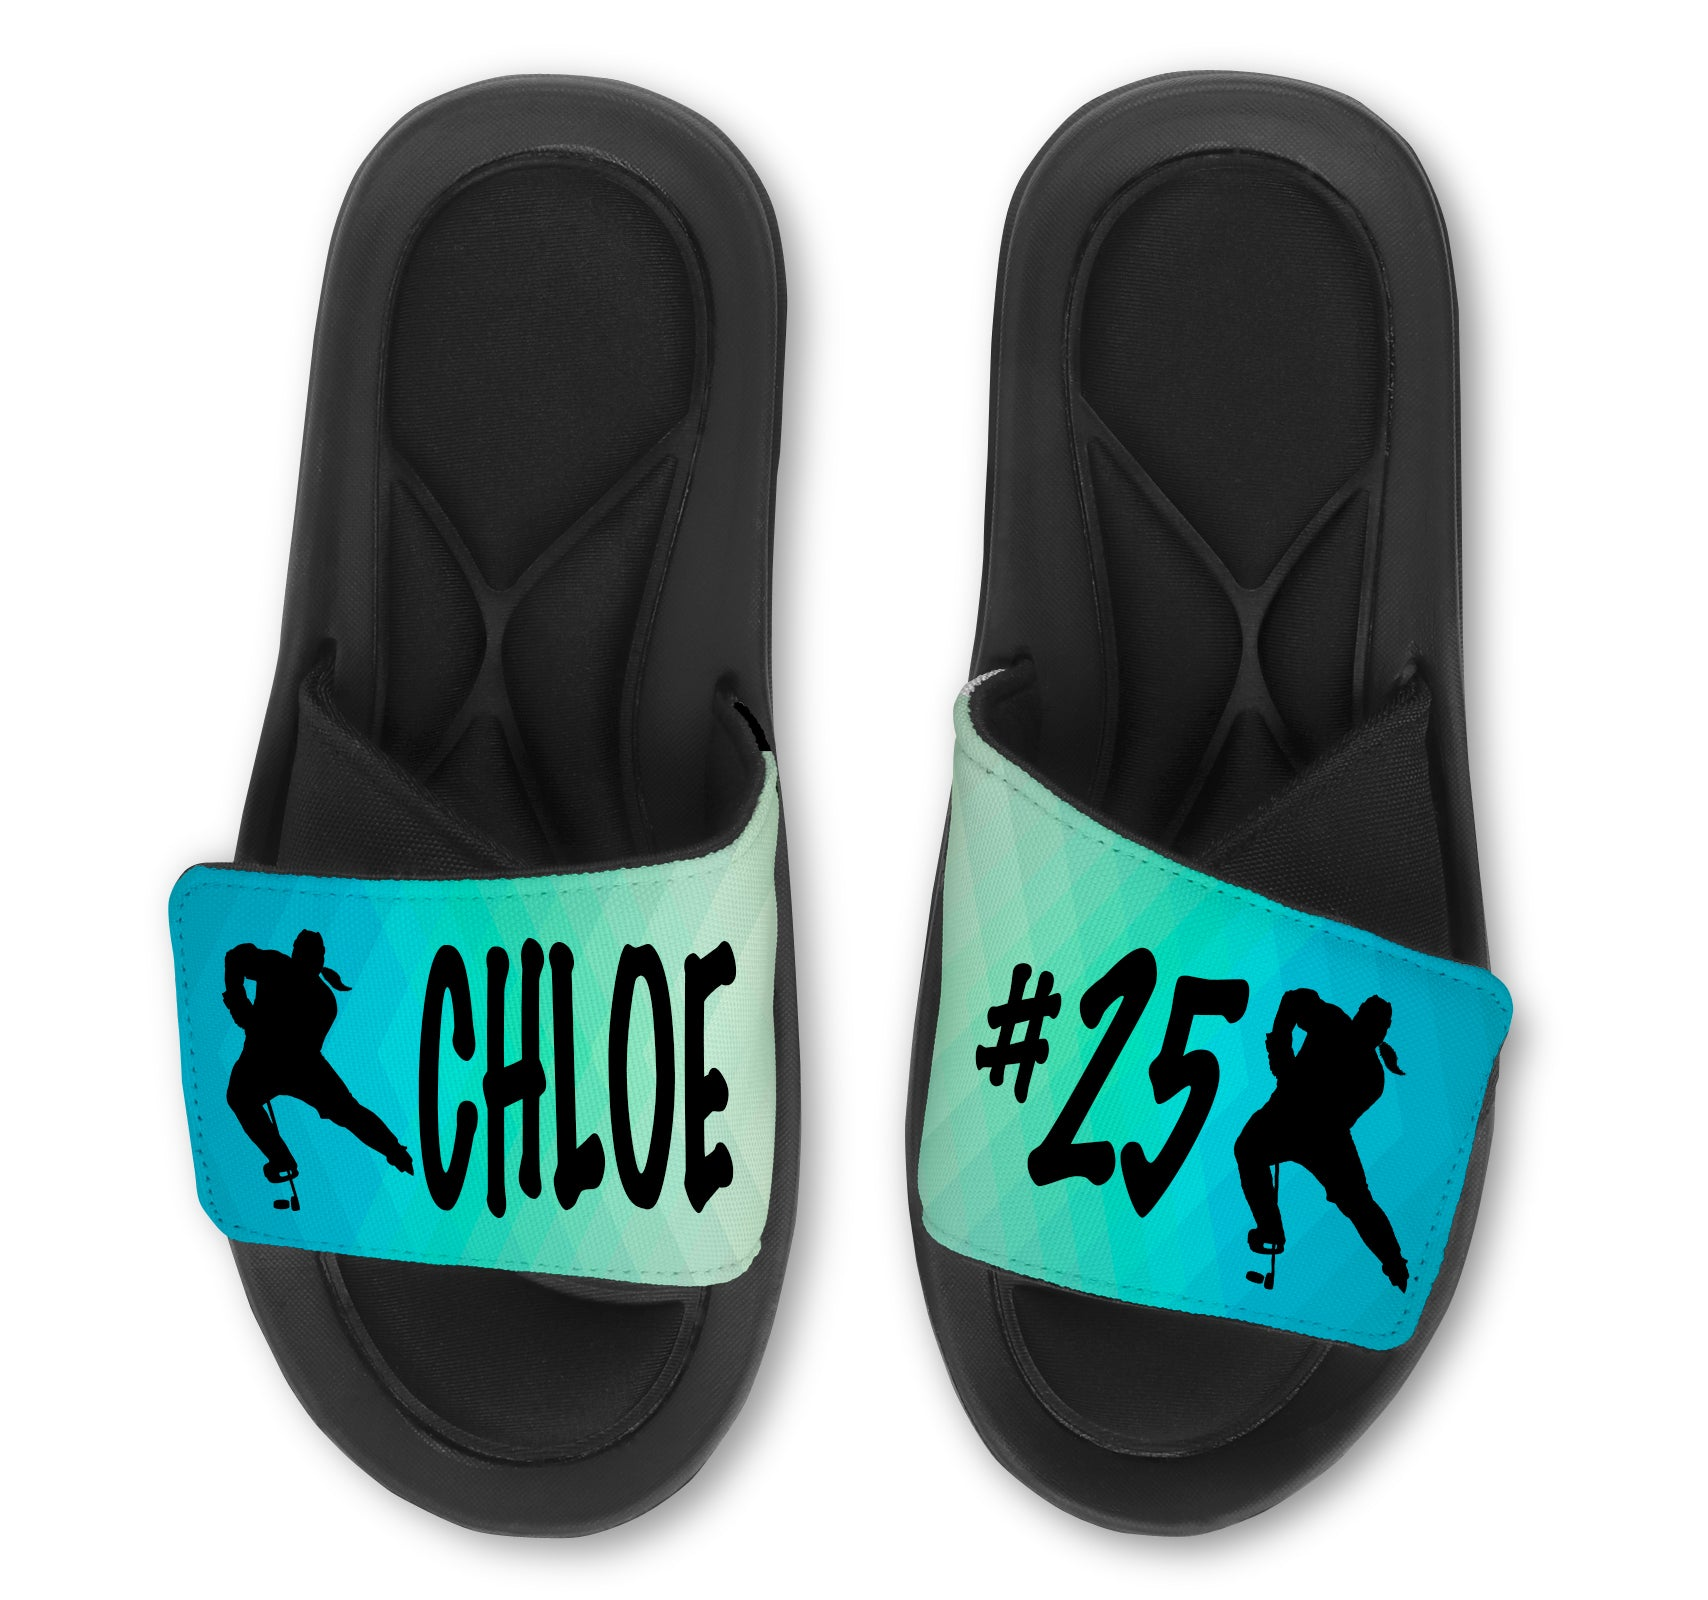 Hockey Abstract Custom Slides / Sandals - Choose your Background!